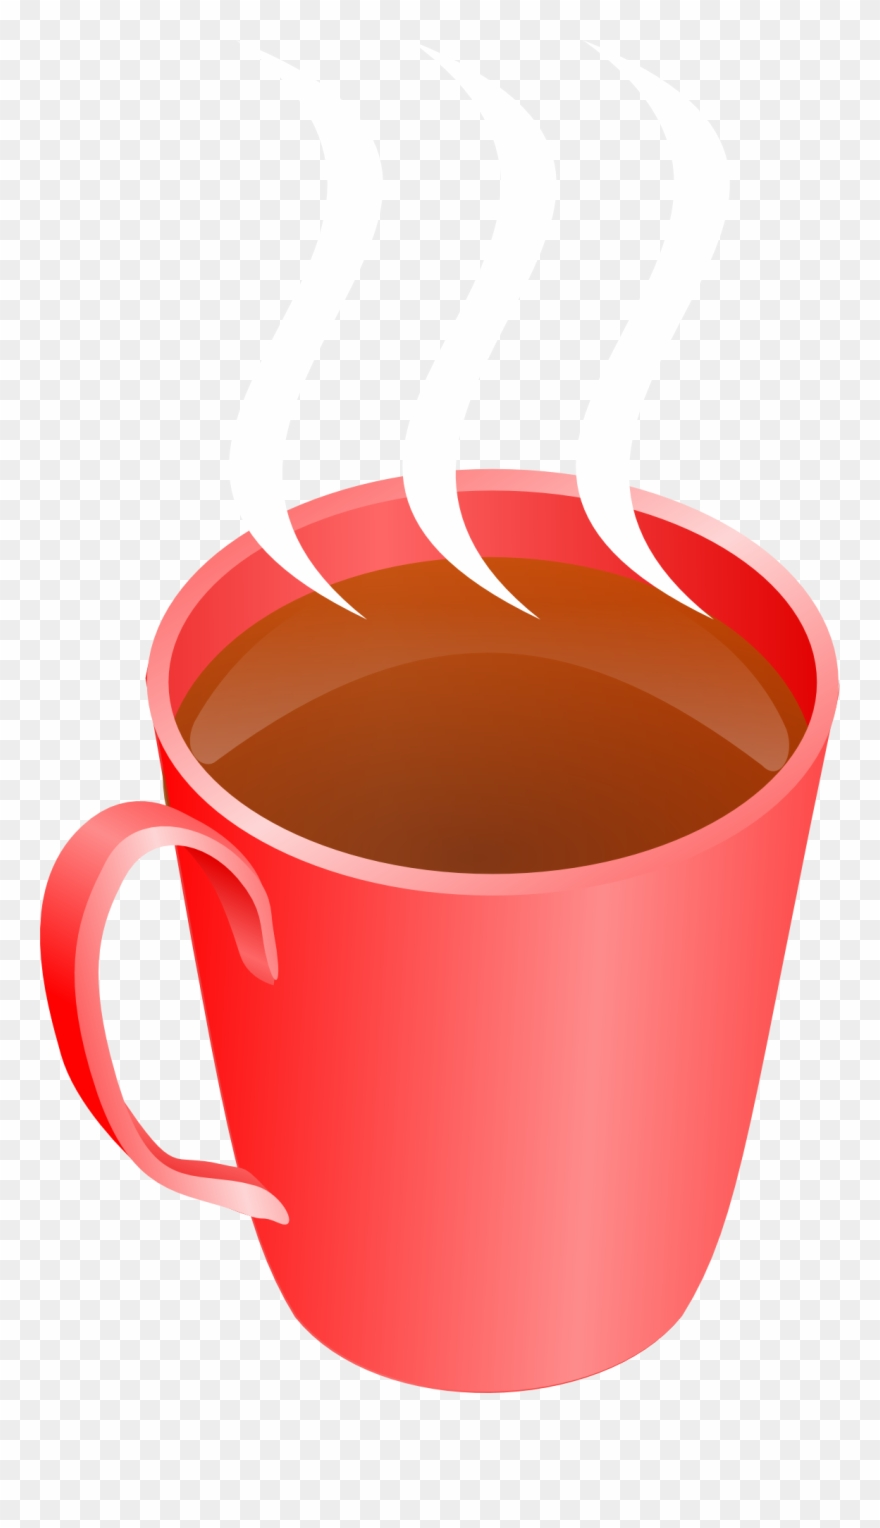 Coffee Steaming Hot Drink Cup Transparent Image.